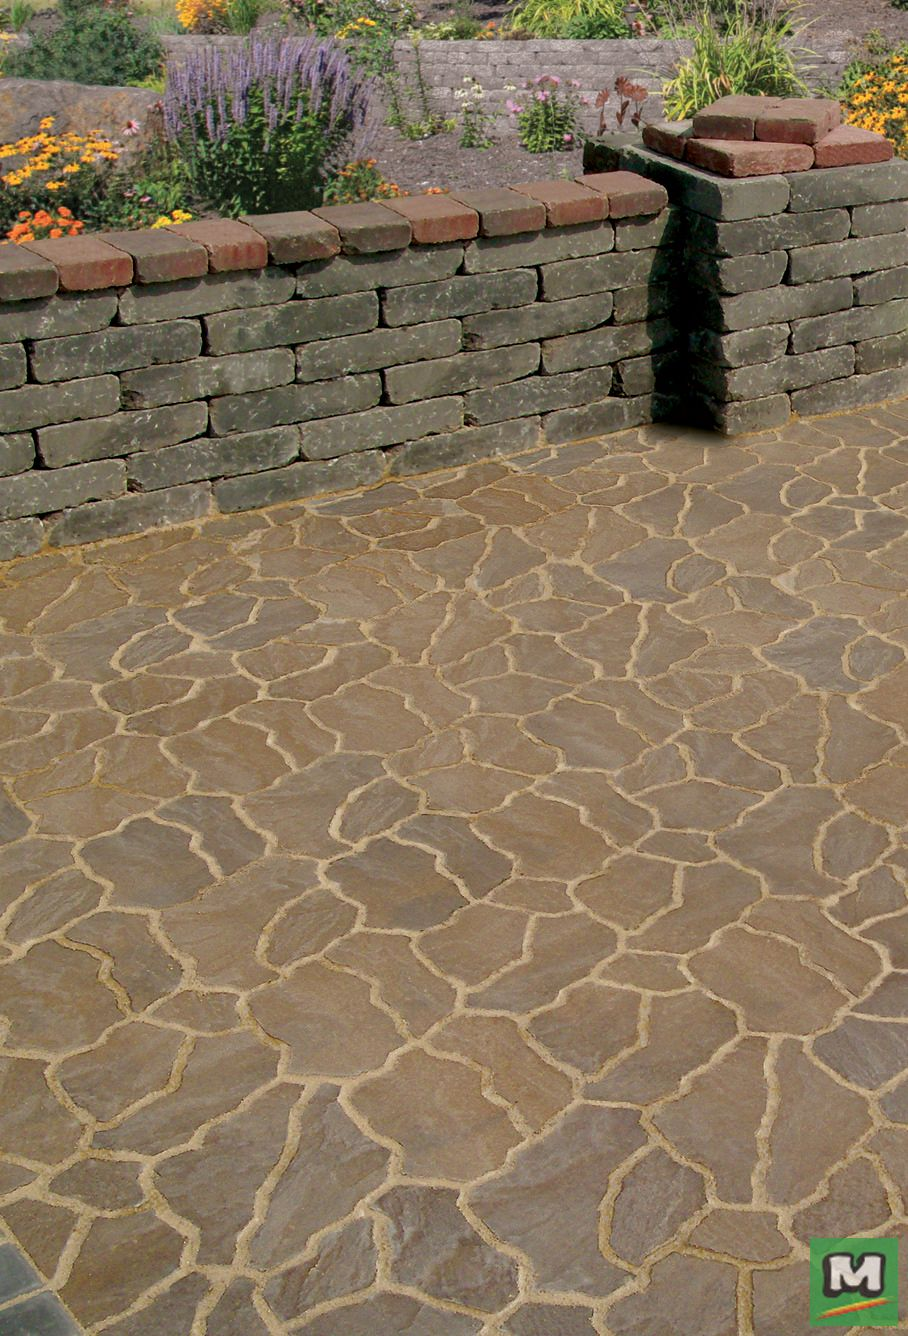 These 14 X 11 Flagstone Pavers Provide A Unique Look And Are Perfect For Walkways Patios And Dr Landscaping Inspiration Landscape Materials Flagstone Pavers